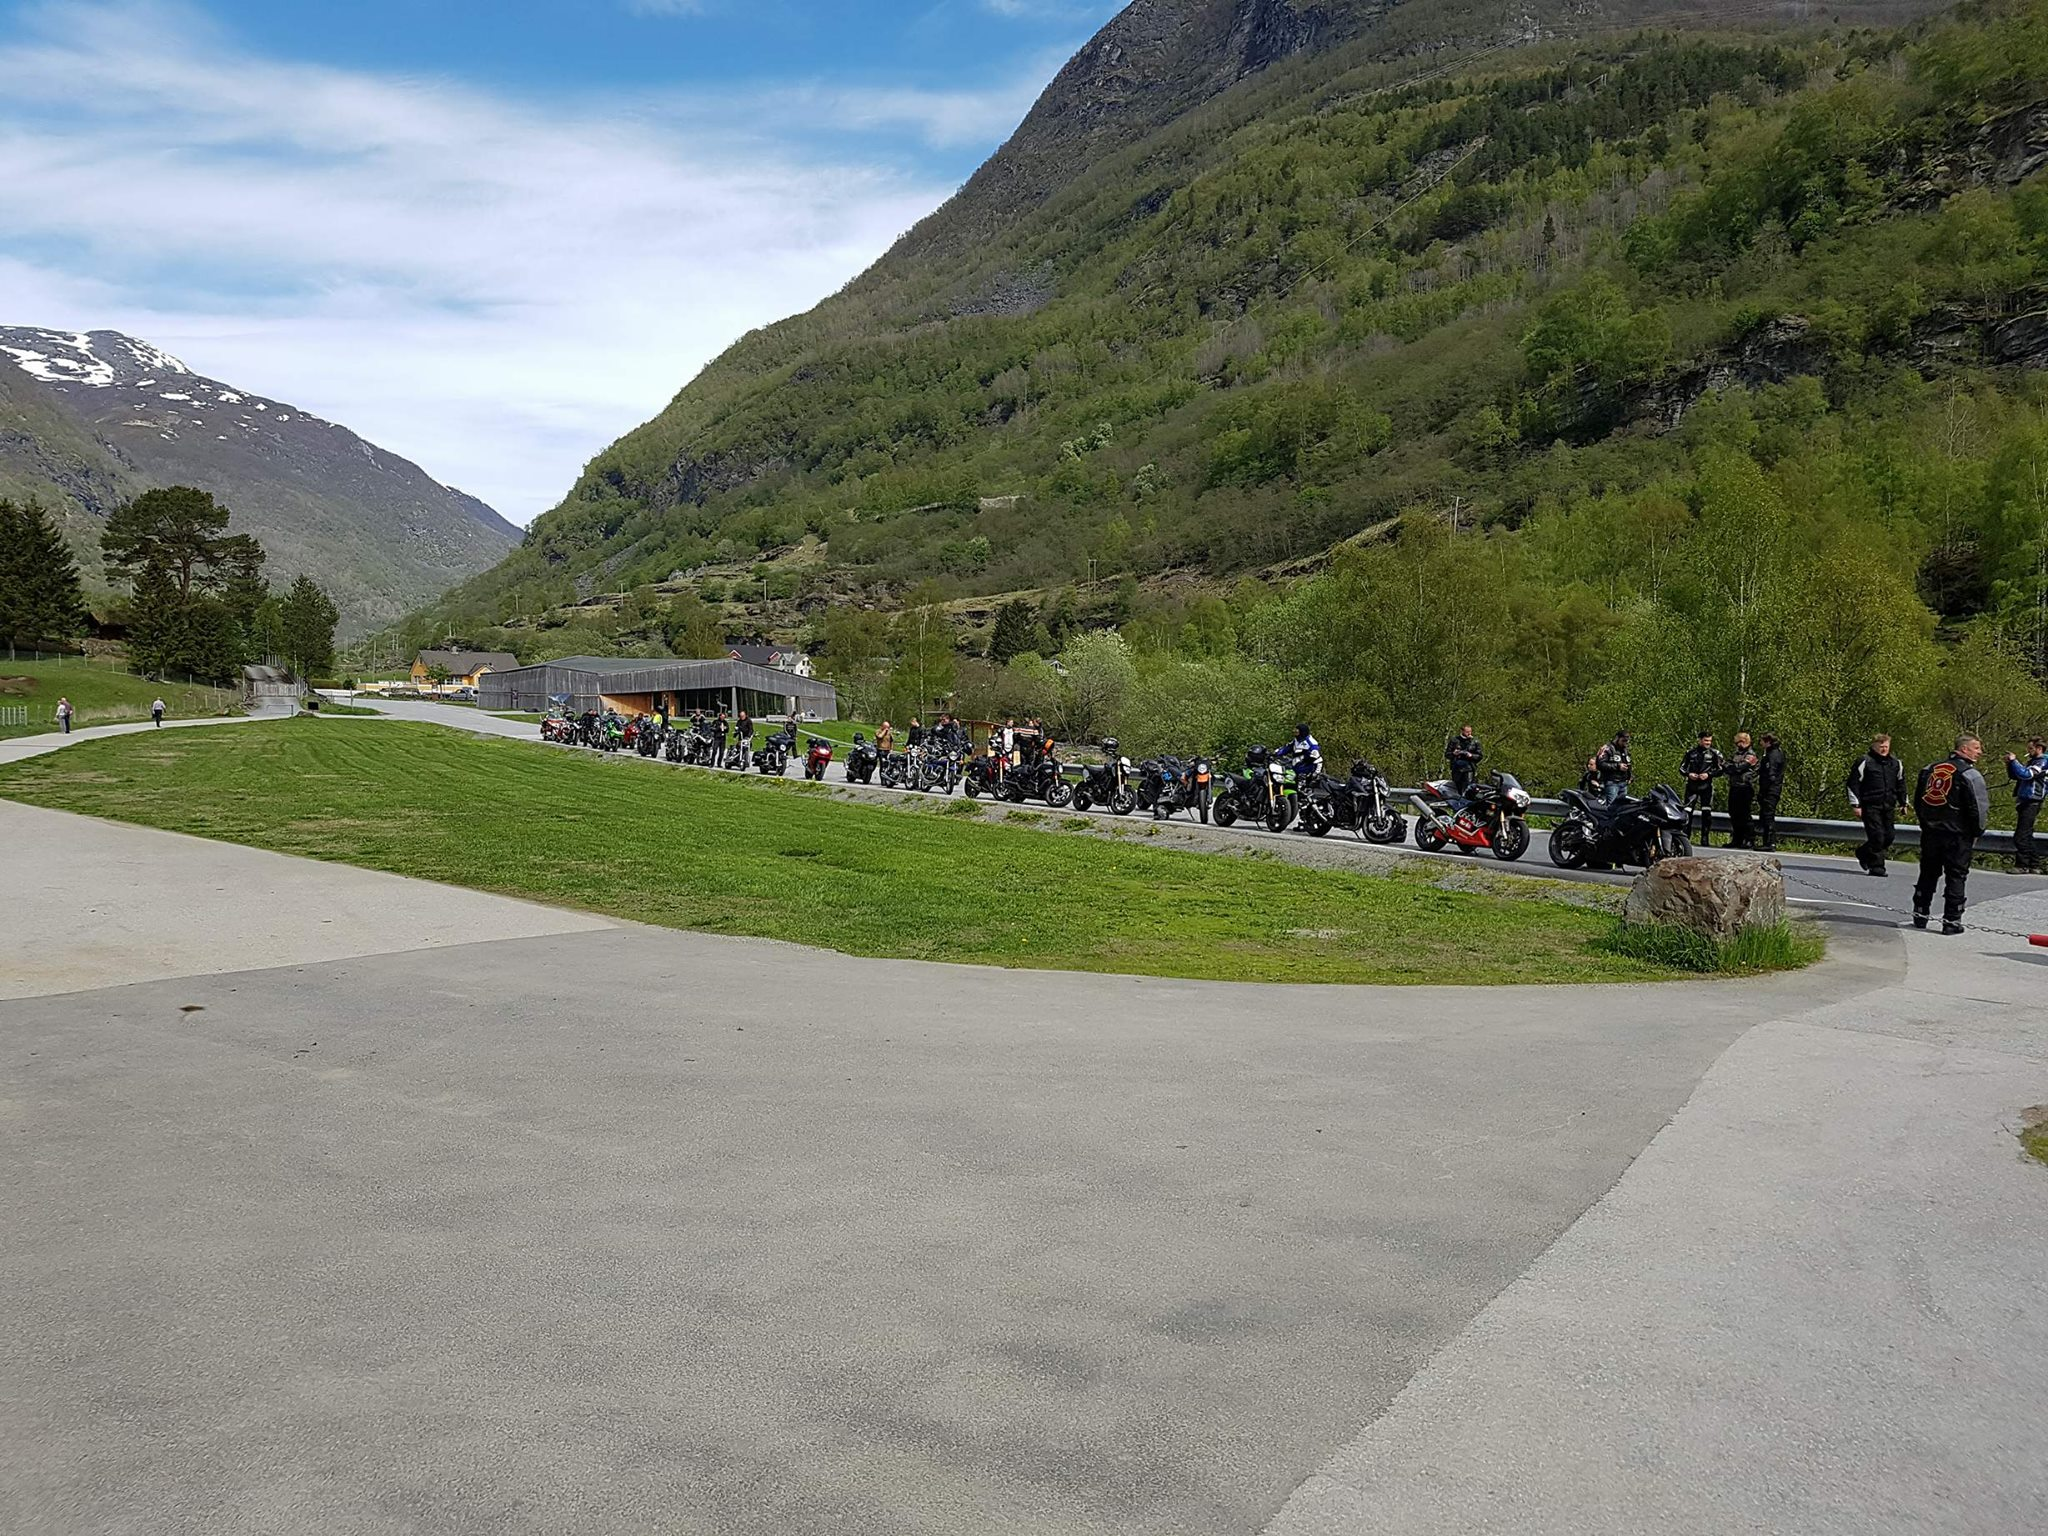 EXPERIENCES LINED-UP. we offer accommodation and refreshments in lærdal